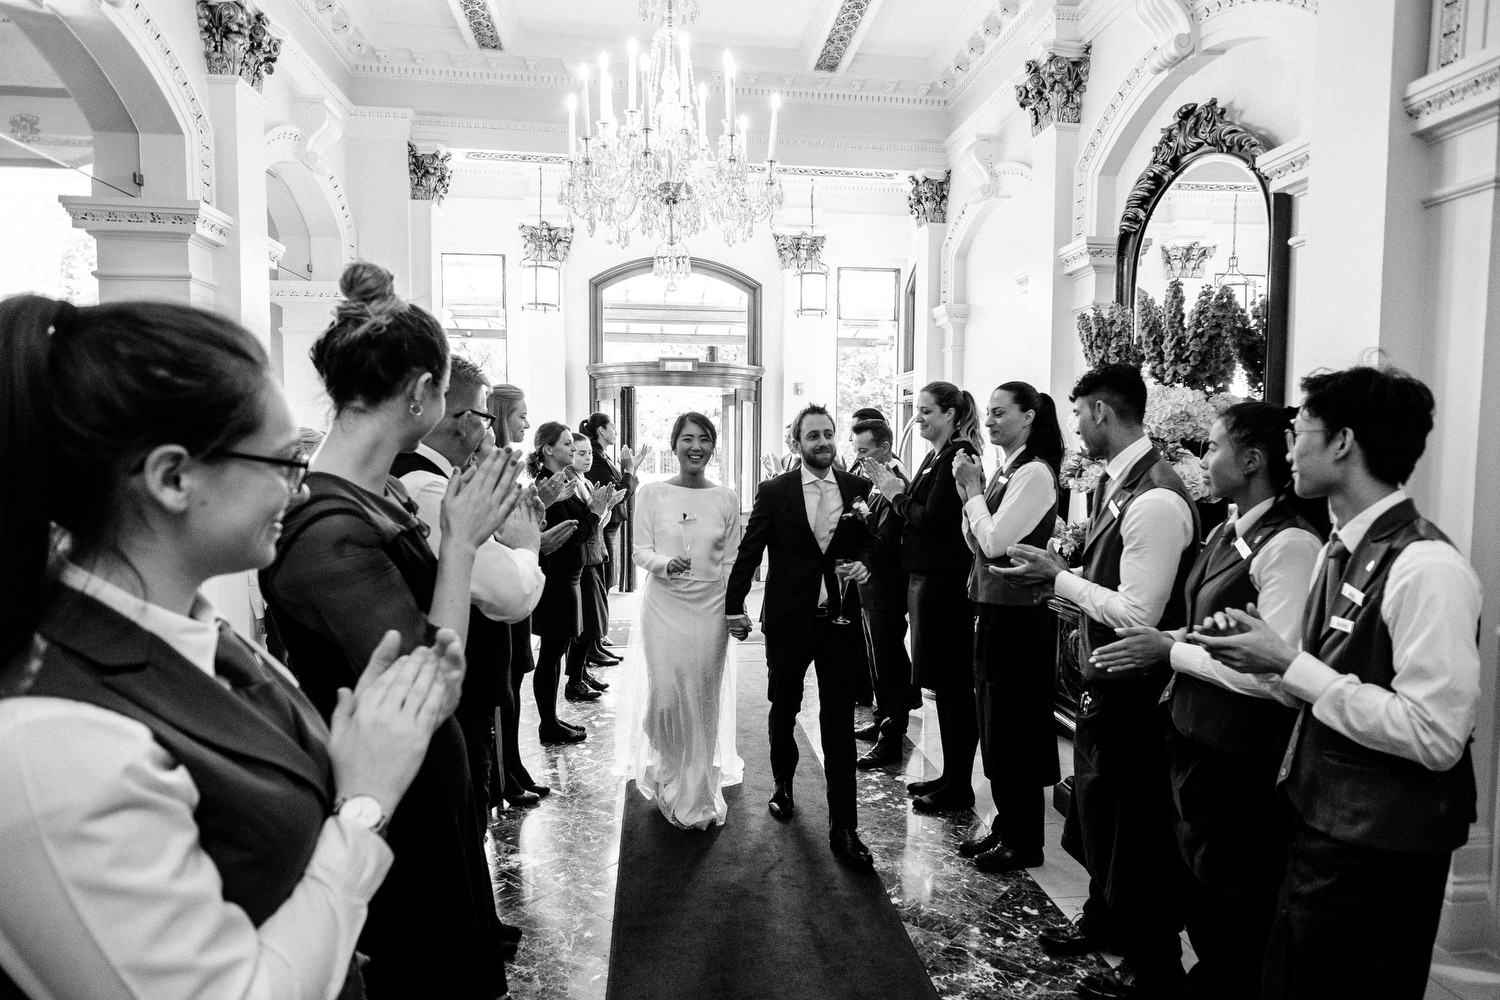 dmp0367_photographer_wedding_dublin_david_mcclelland_candid_photography_fujifilm_shelbourne_reception_documentary